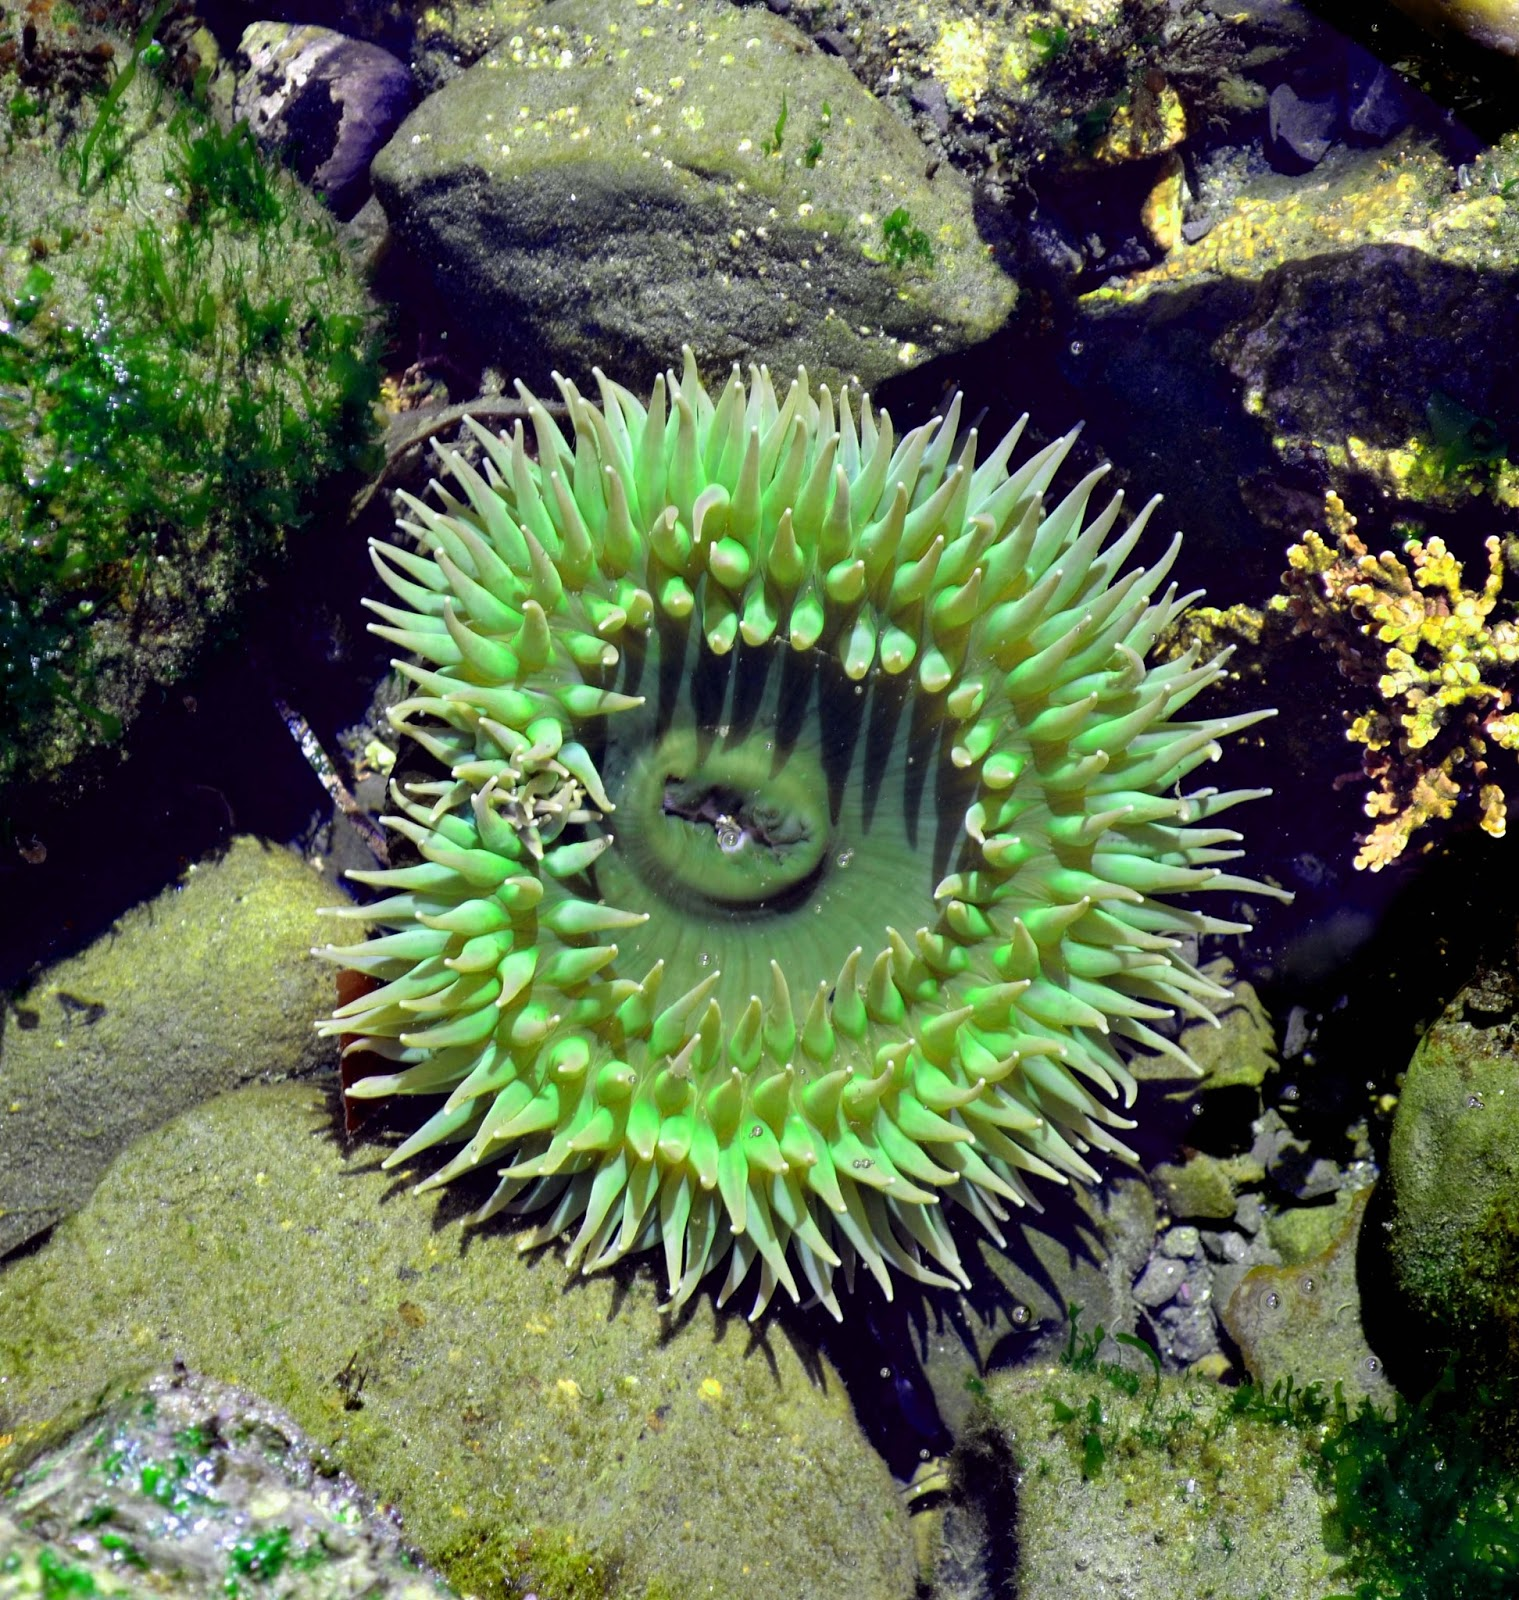 Giant green sea anemone - Anthopleura xanthogrammica ...